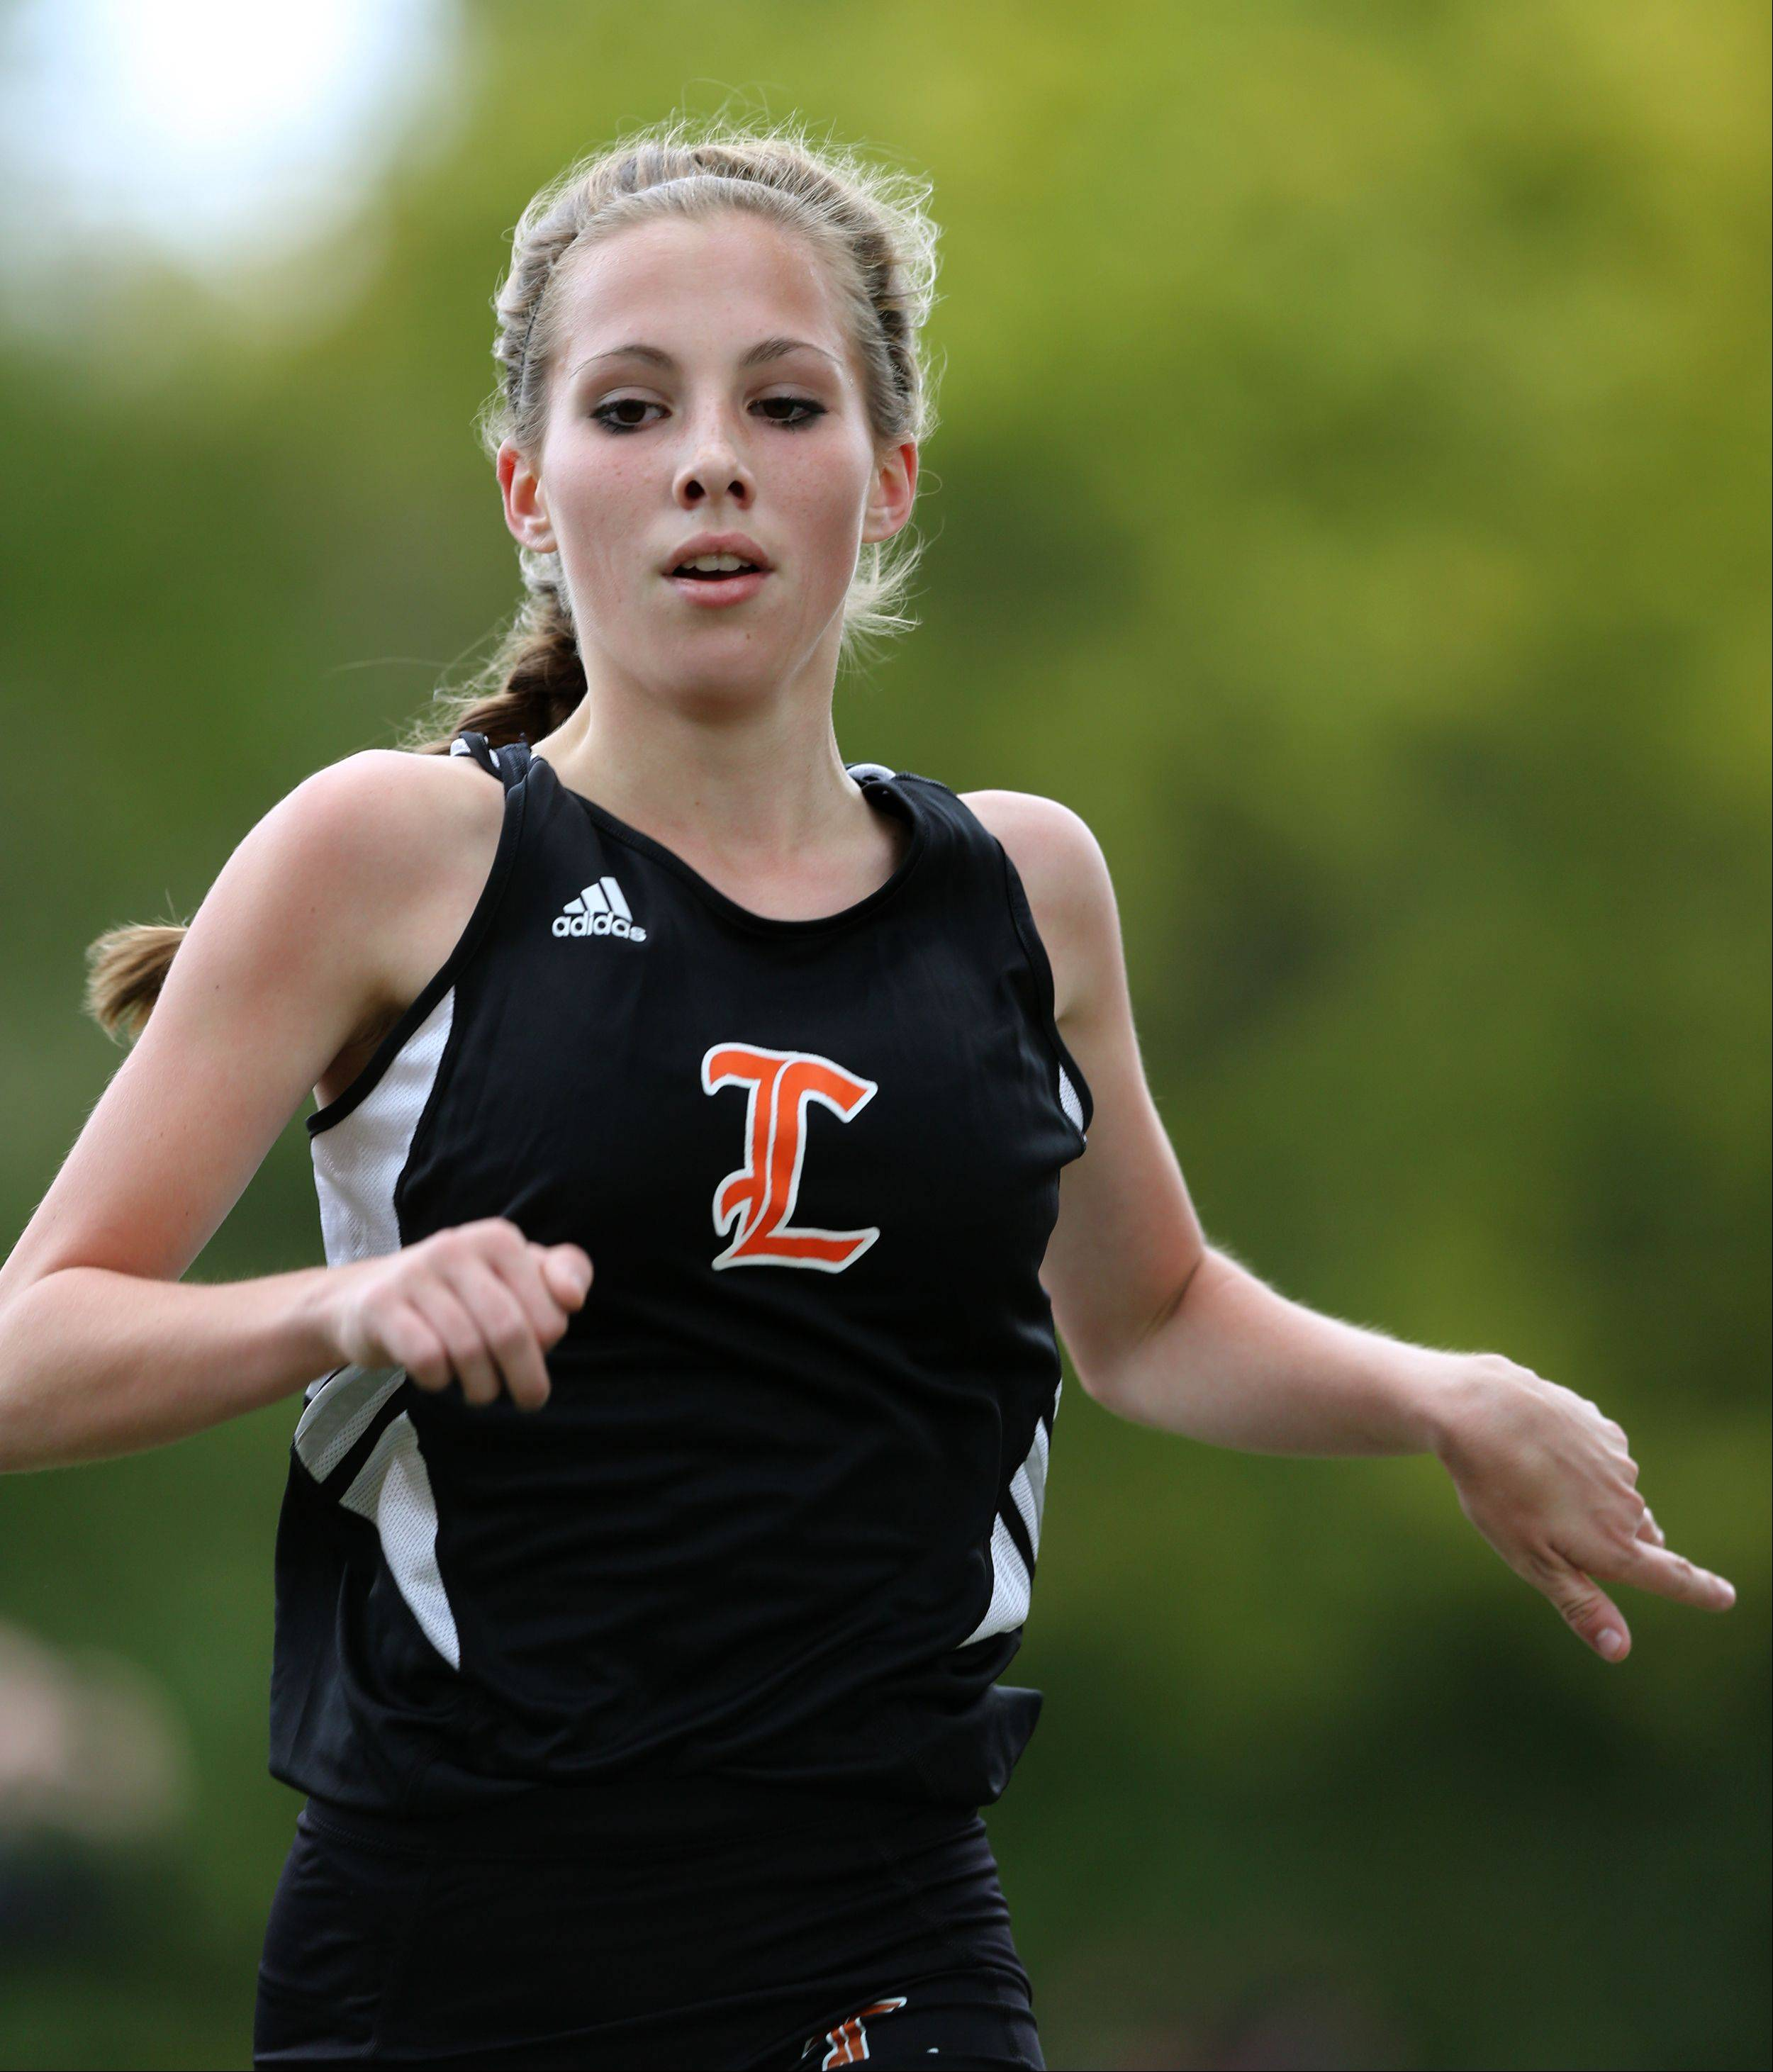 Libertyville's Emily Olson finishes the Class 3A Libertyville cross country regional at Adler Park.